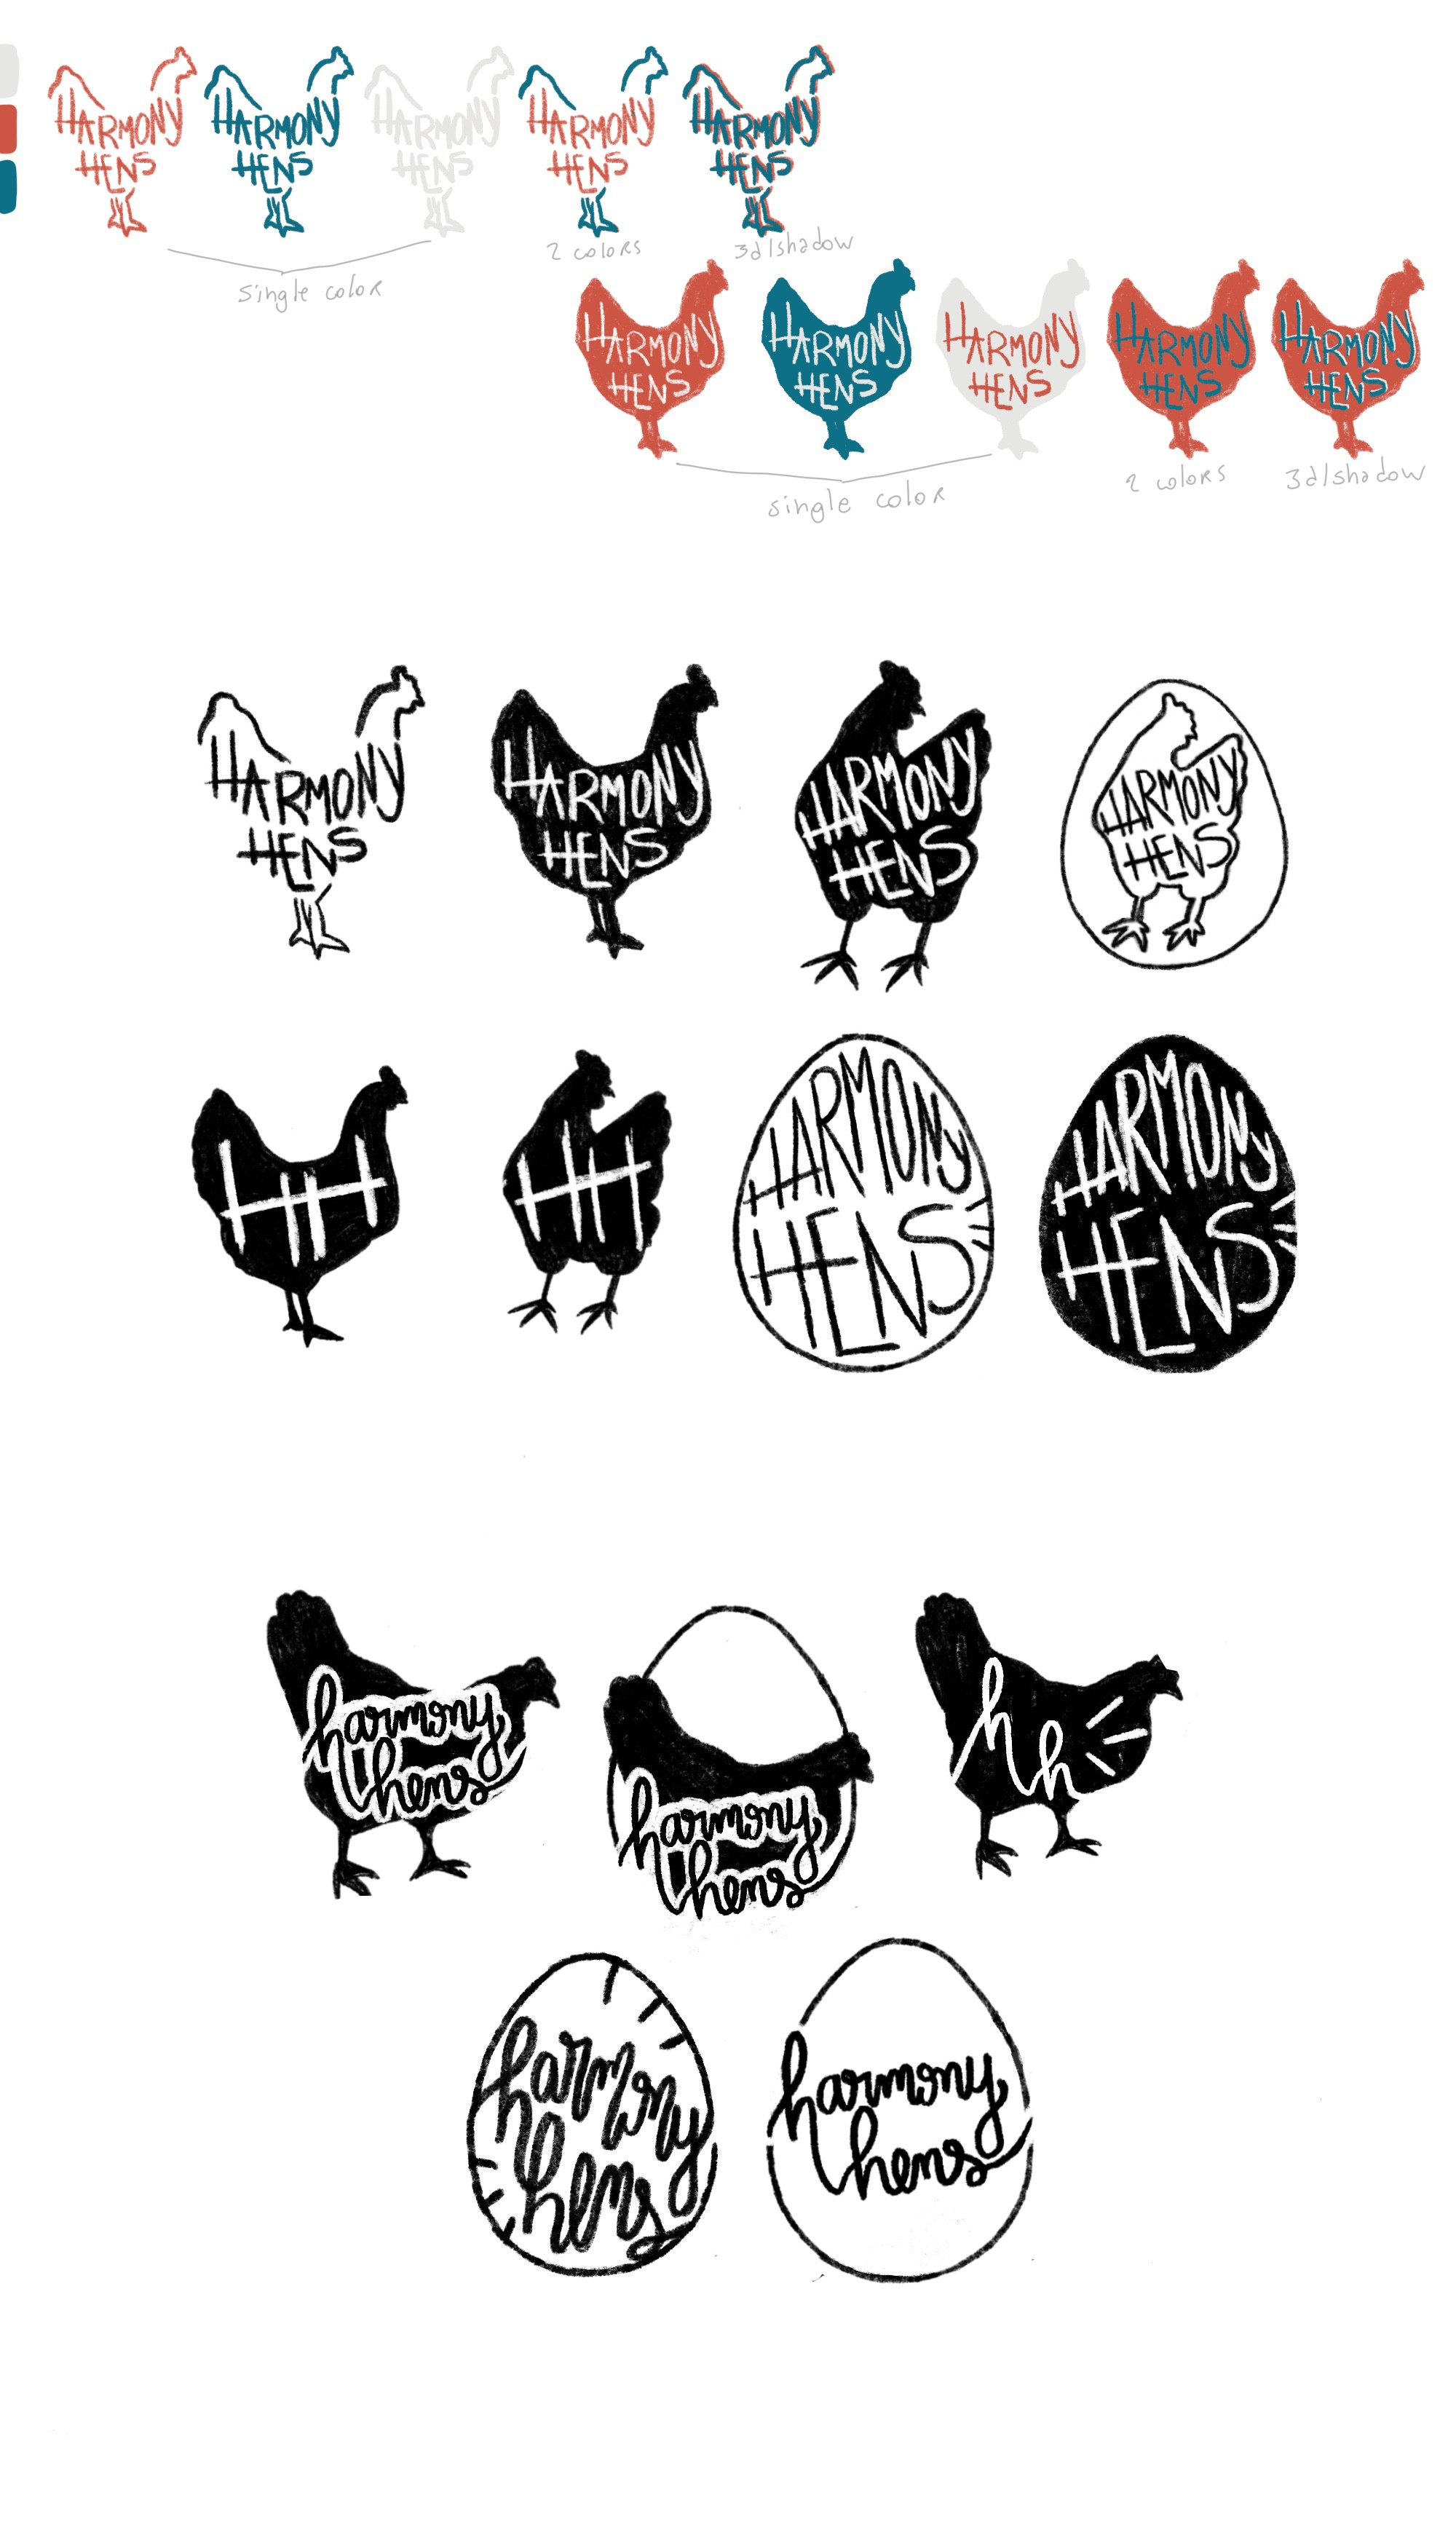 Design Certified Organic Harmony Hens Local Agriculture Logo